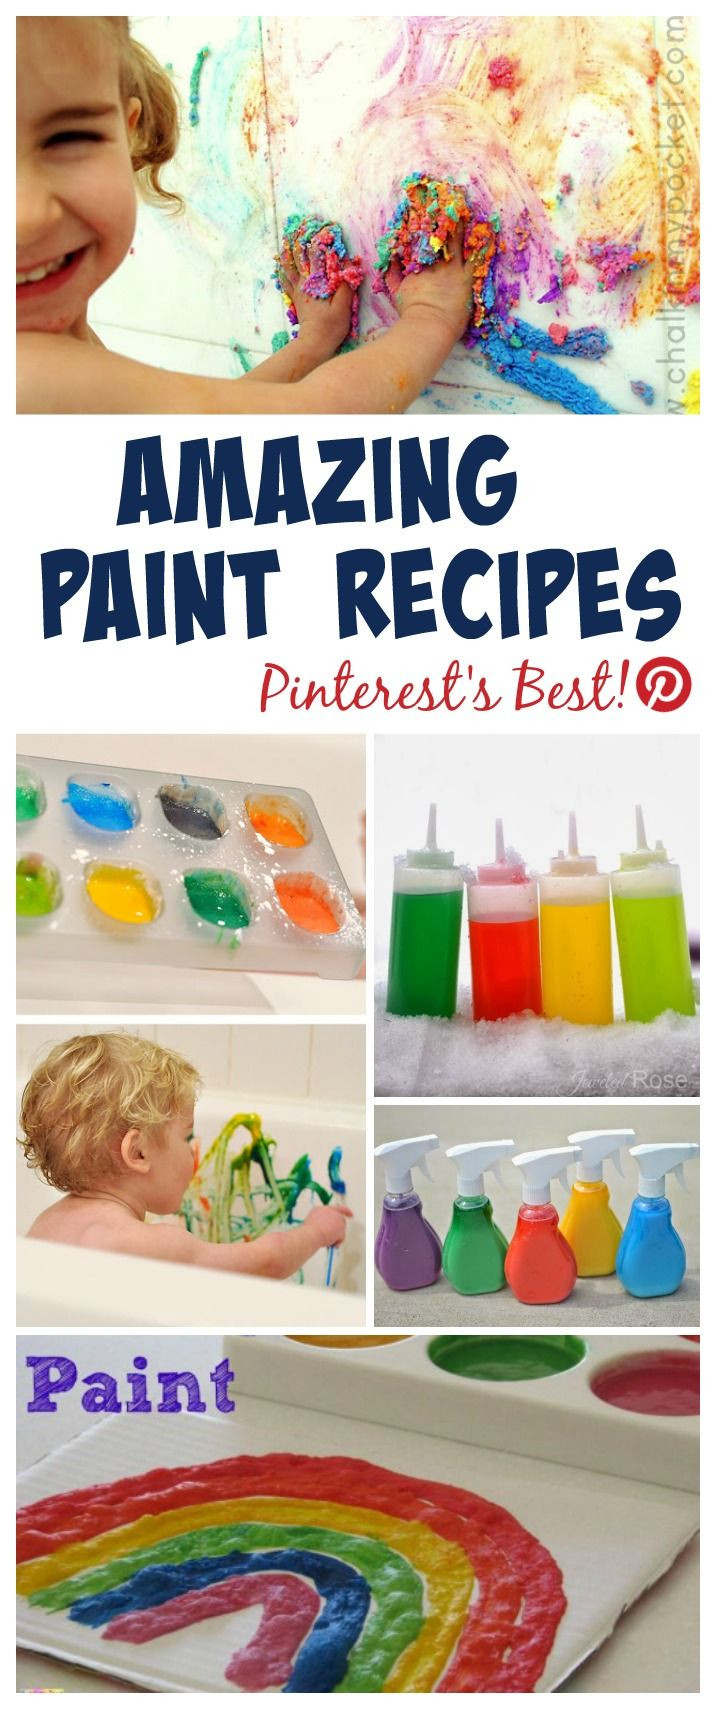 Amazing paint recipes for kids- so many fun ideas I can't wait to try!